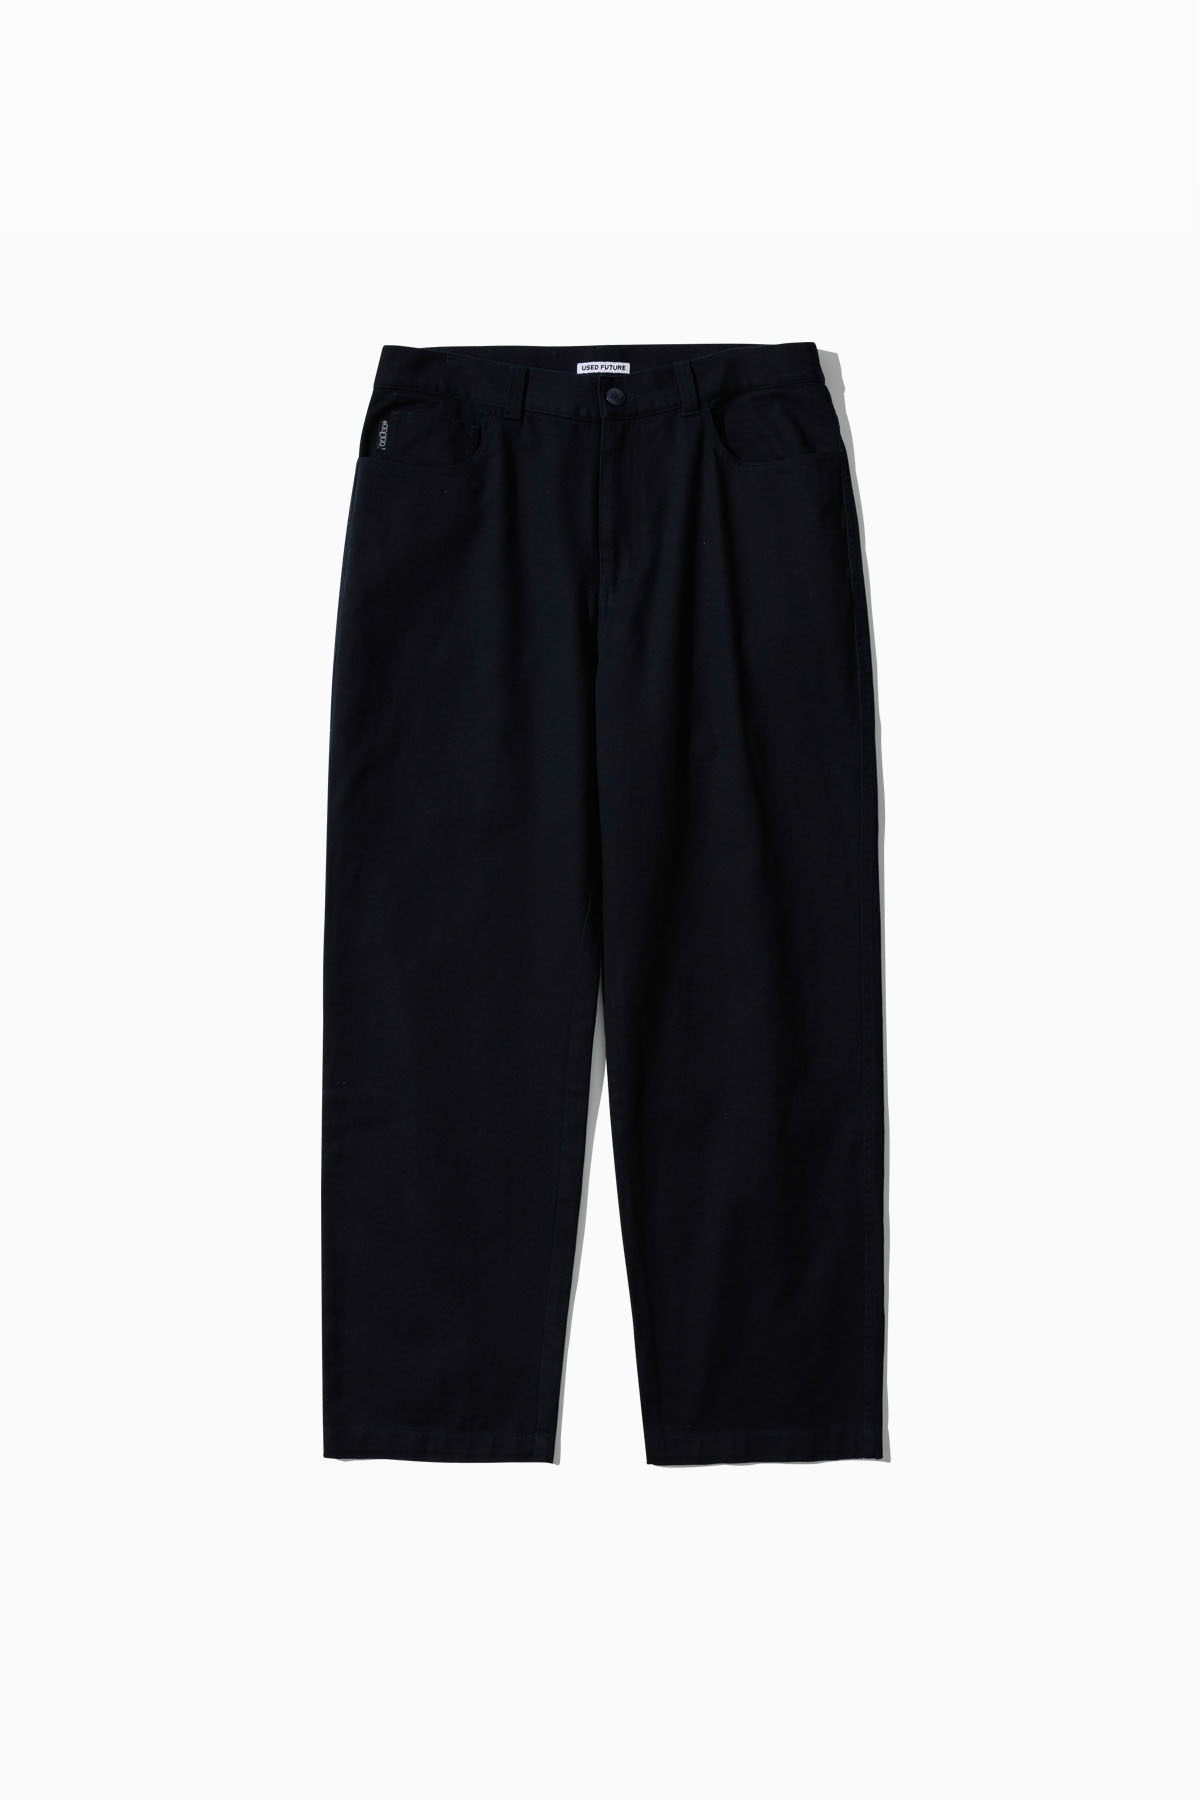 WORK PANTS_NAVY